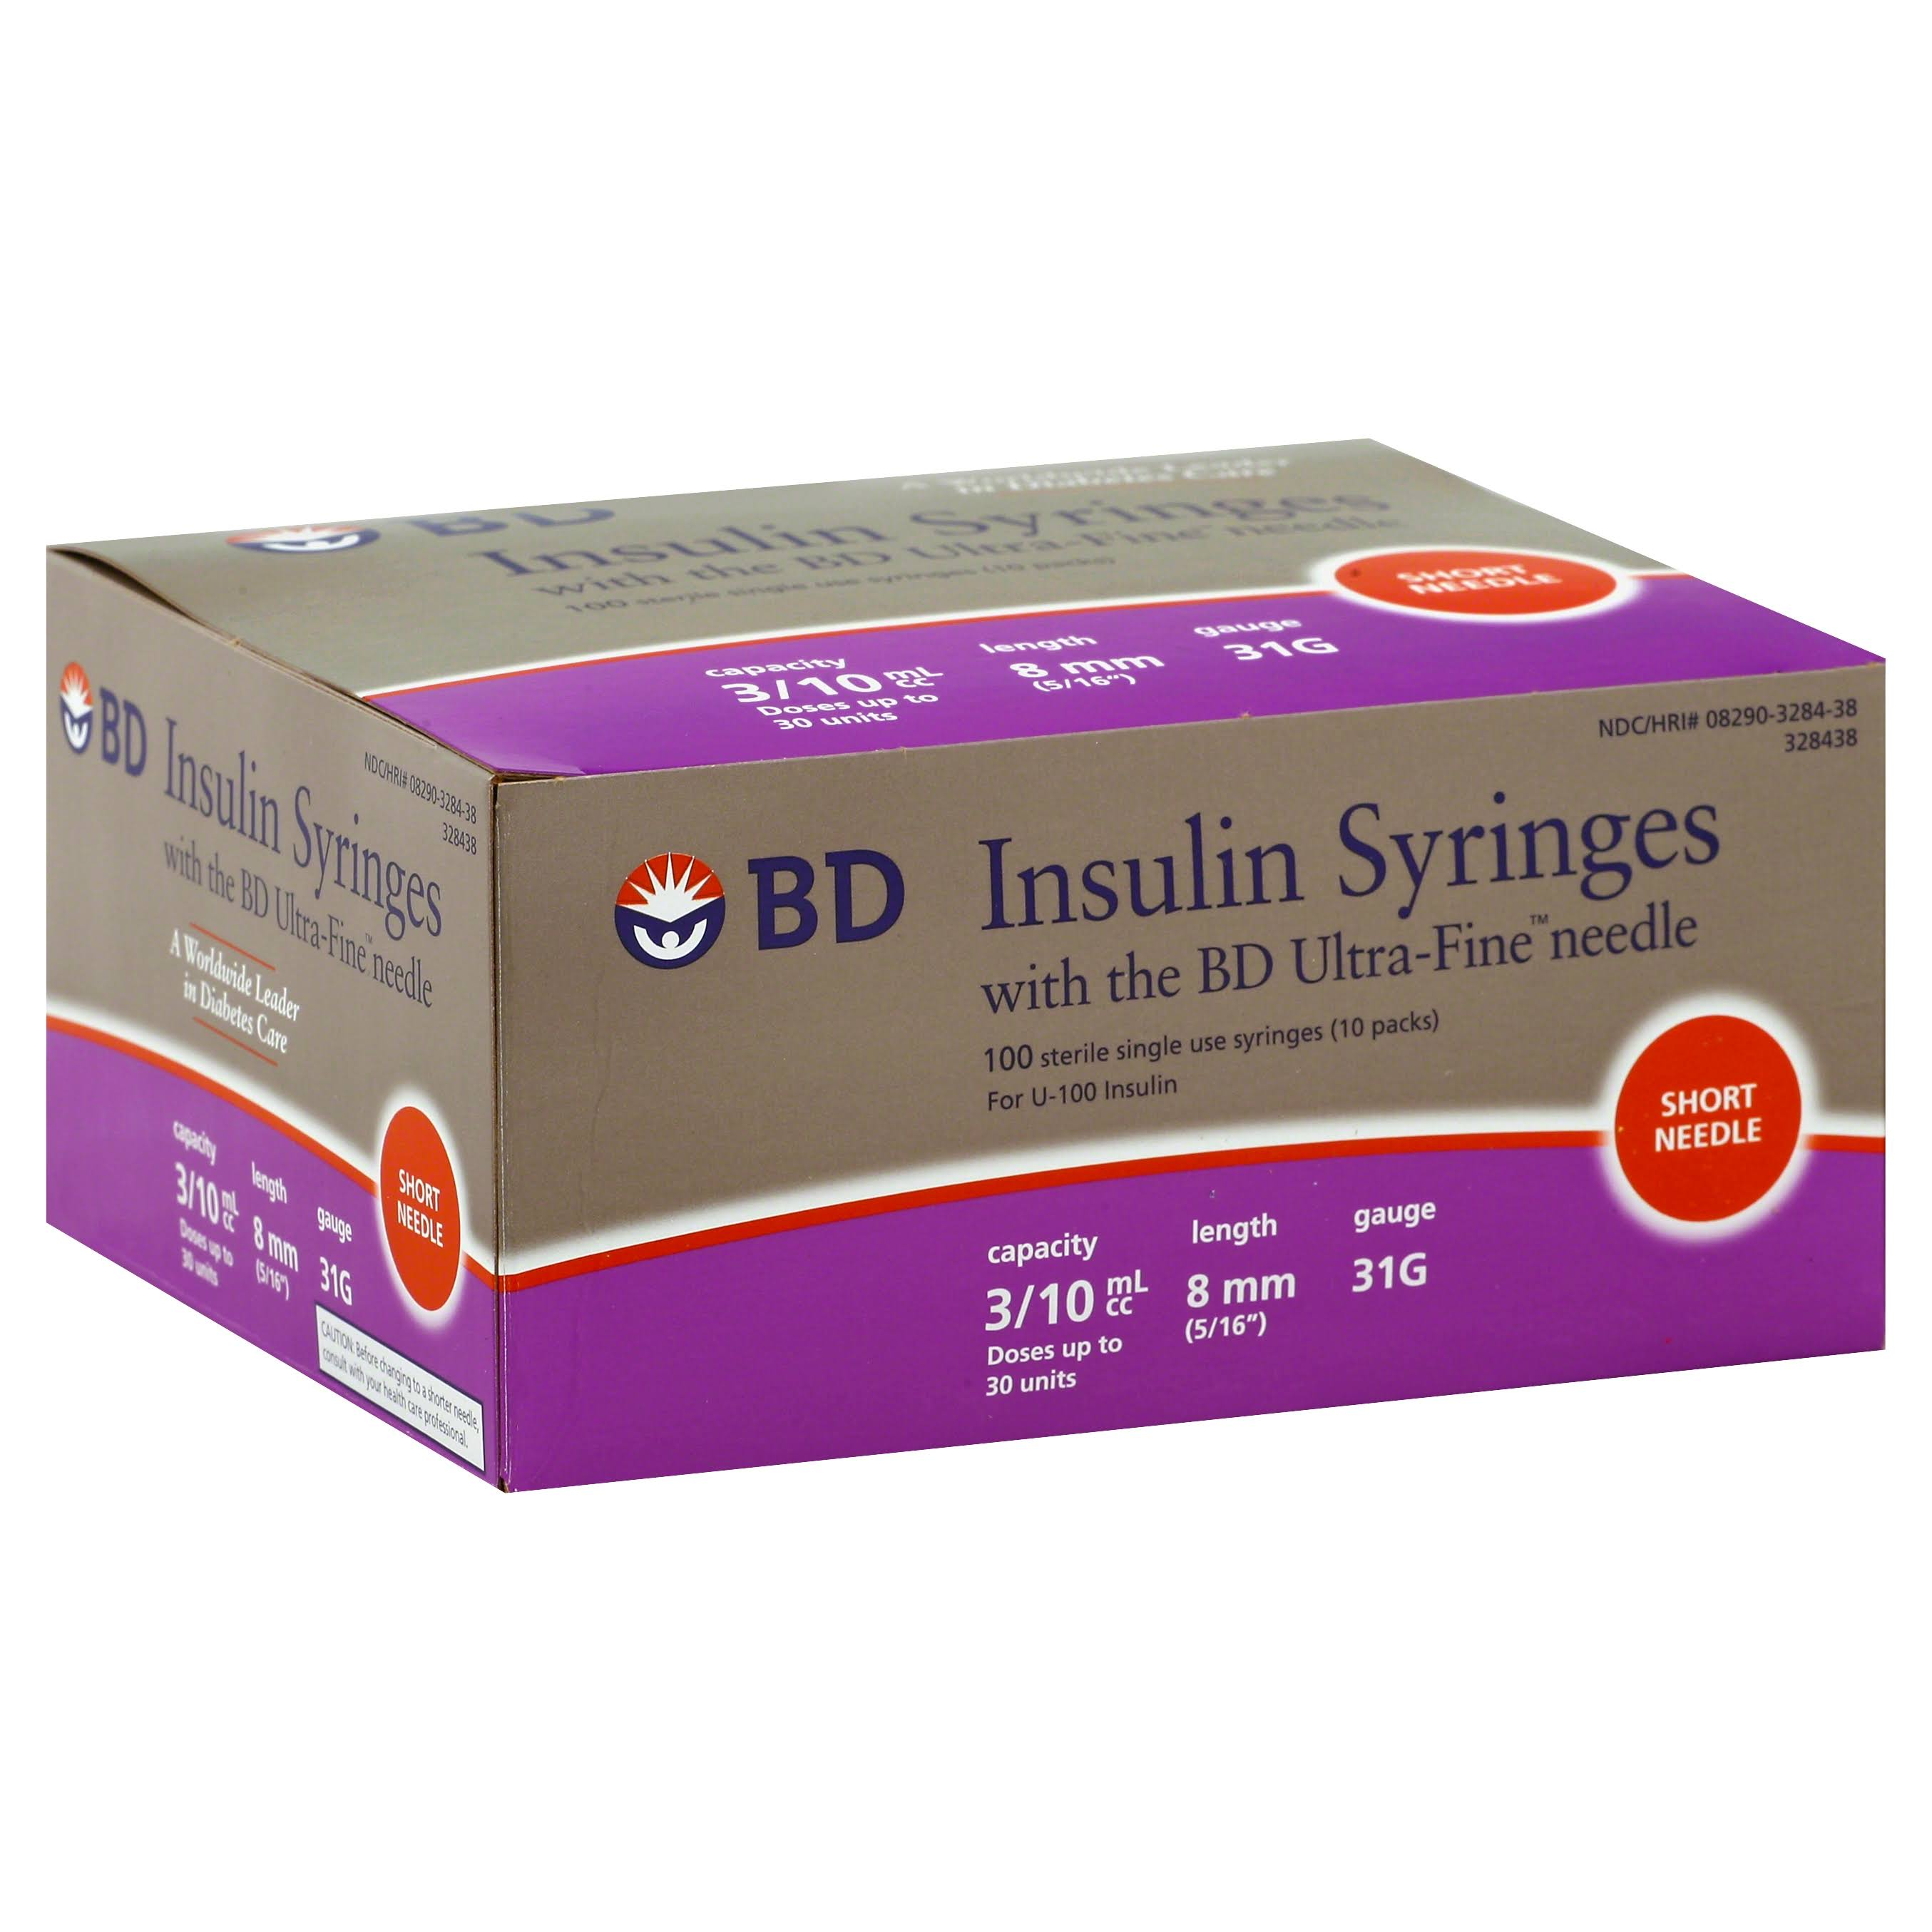 "BD Insulin Syringe with Ultra-Fine Needle - 31 Gauge x 5/16"", 3/10ml, 100ct"